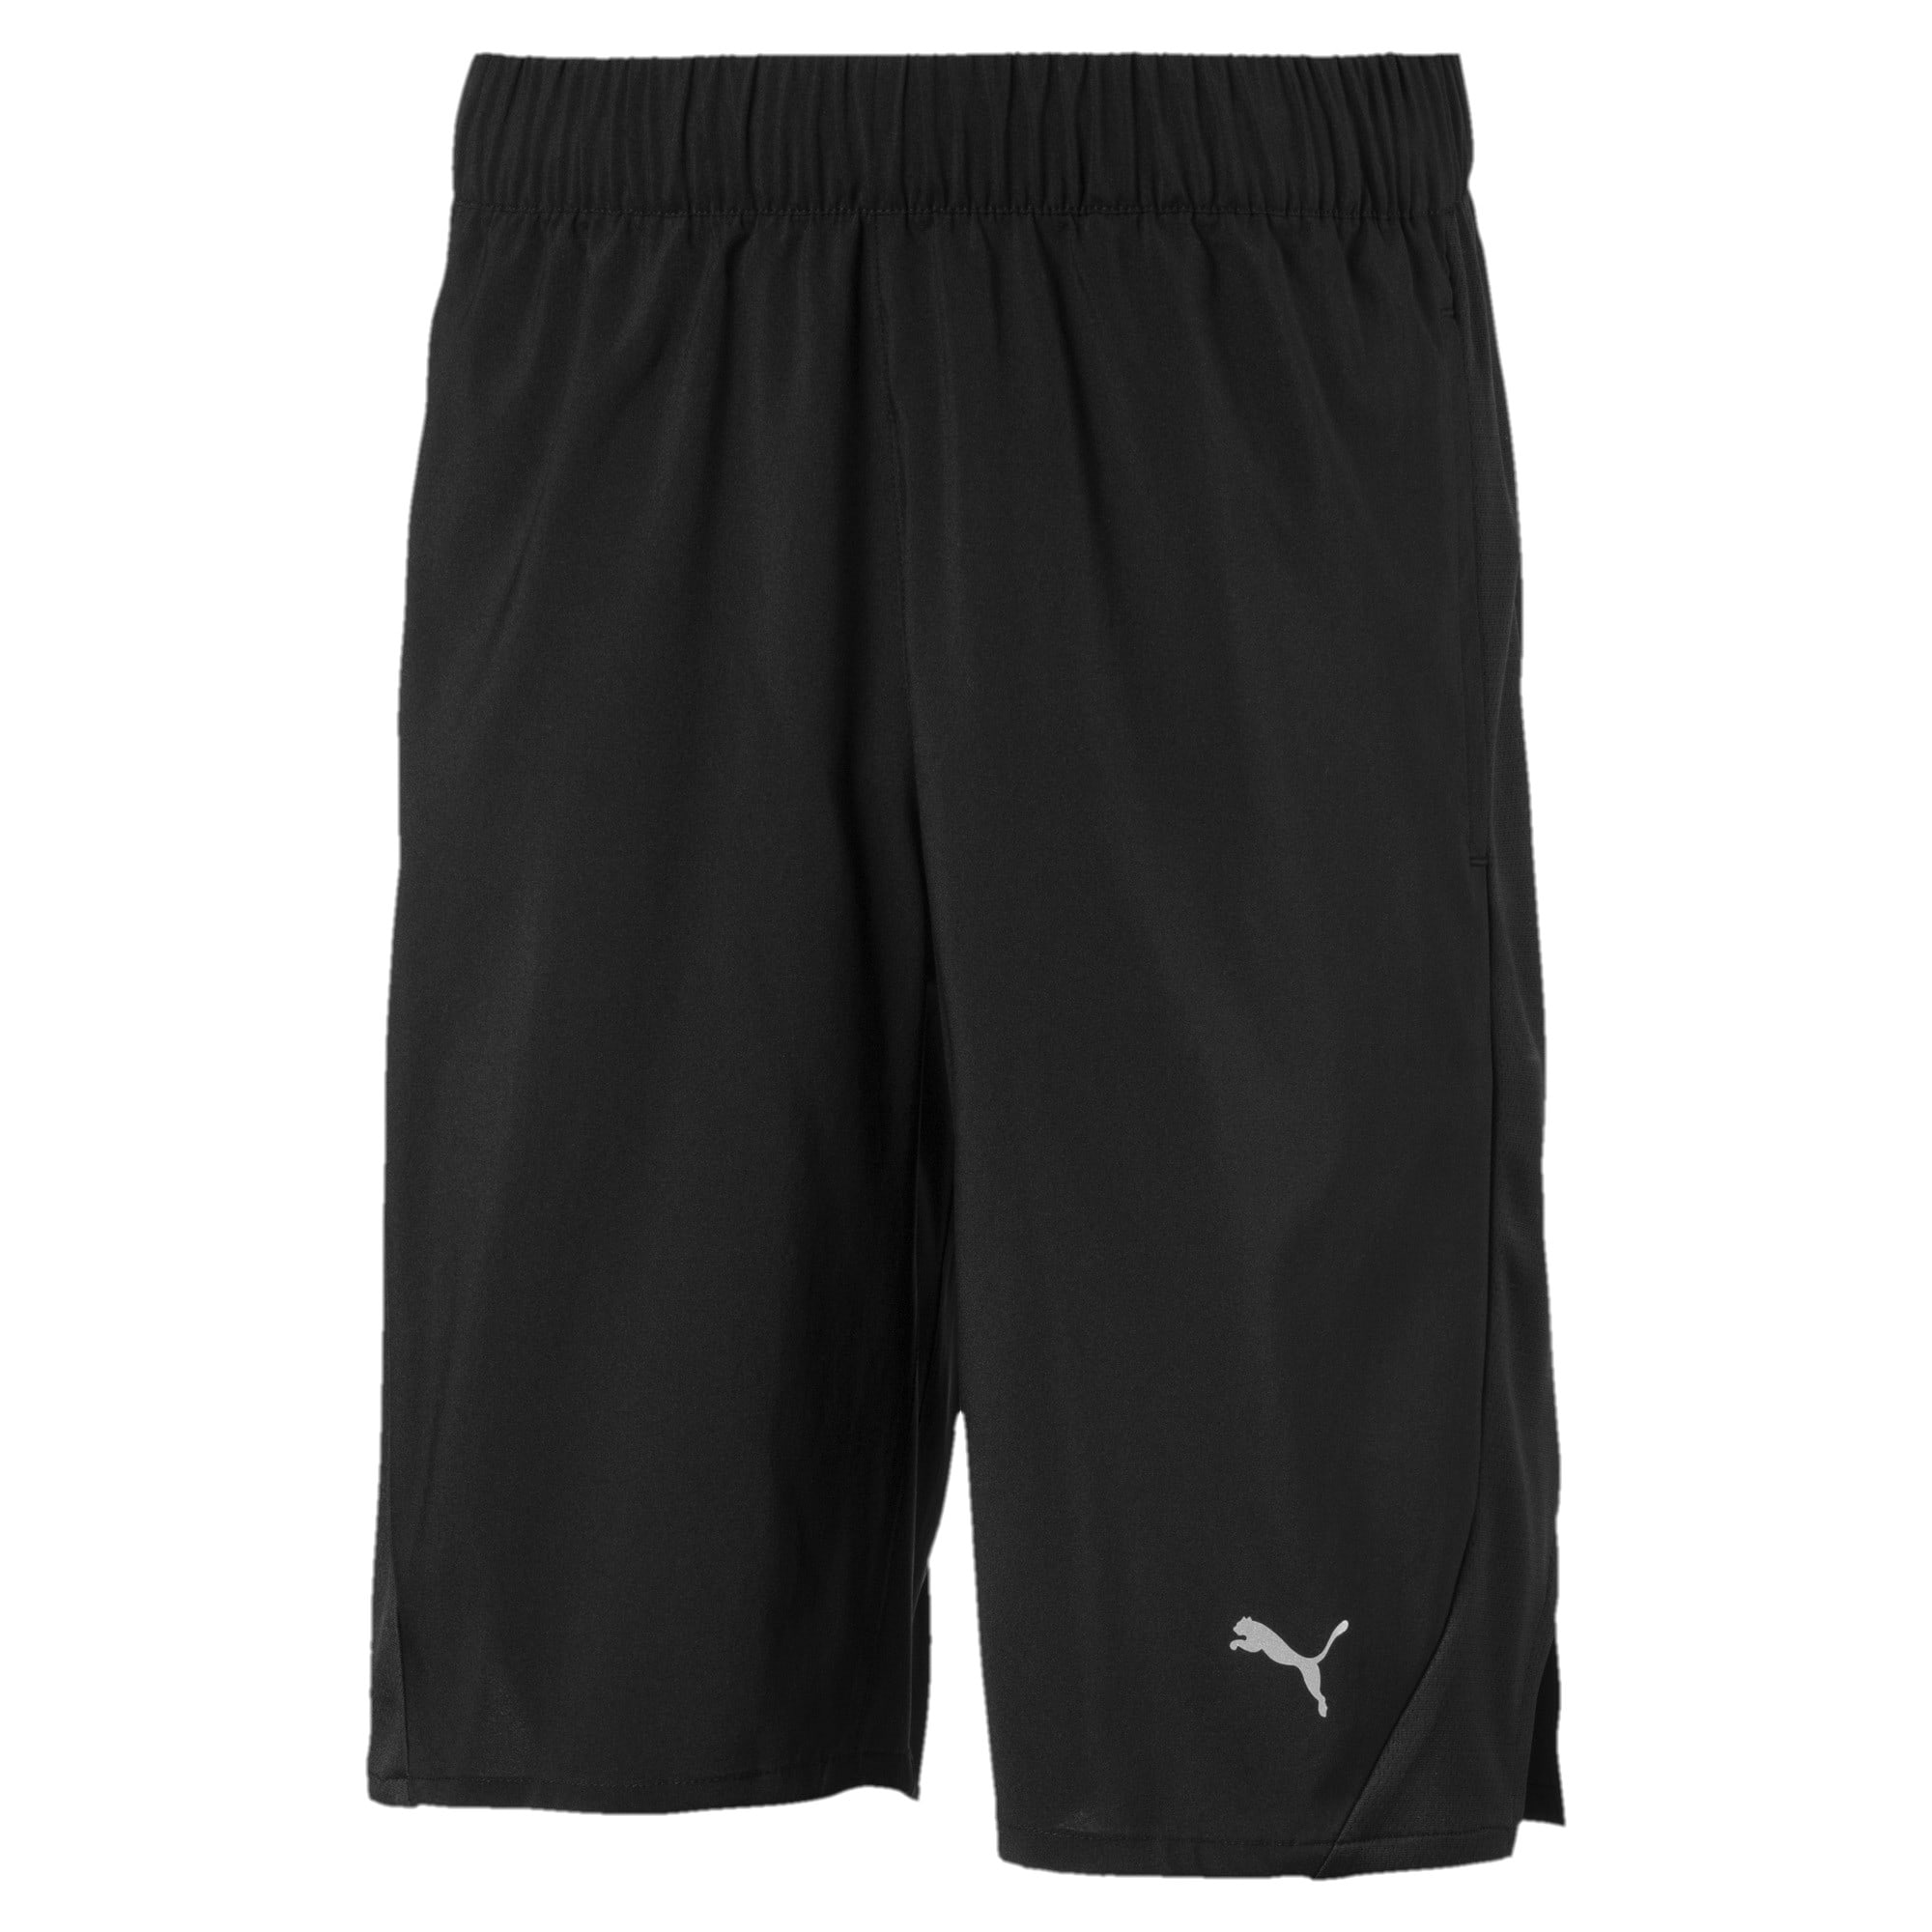 Thumbnail 1 of Boys' Gym Woven Shorts, Puma Black, medium-IND